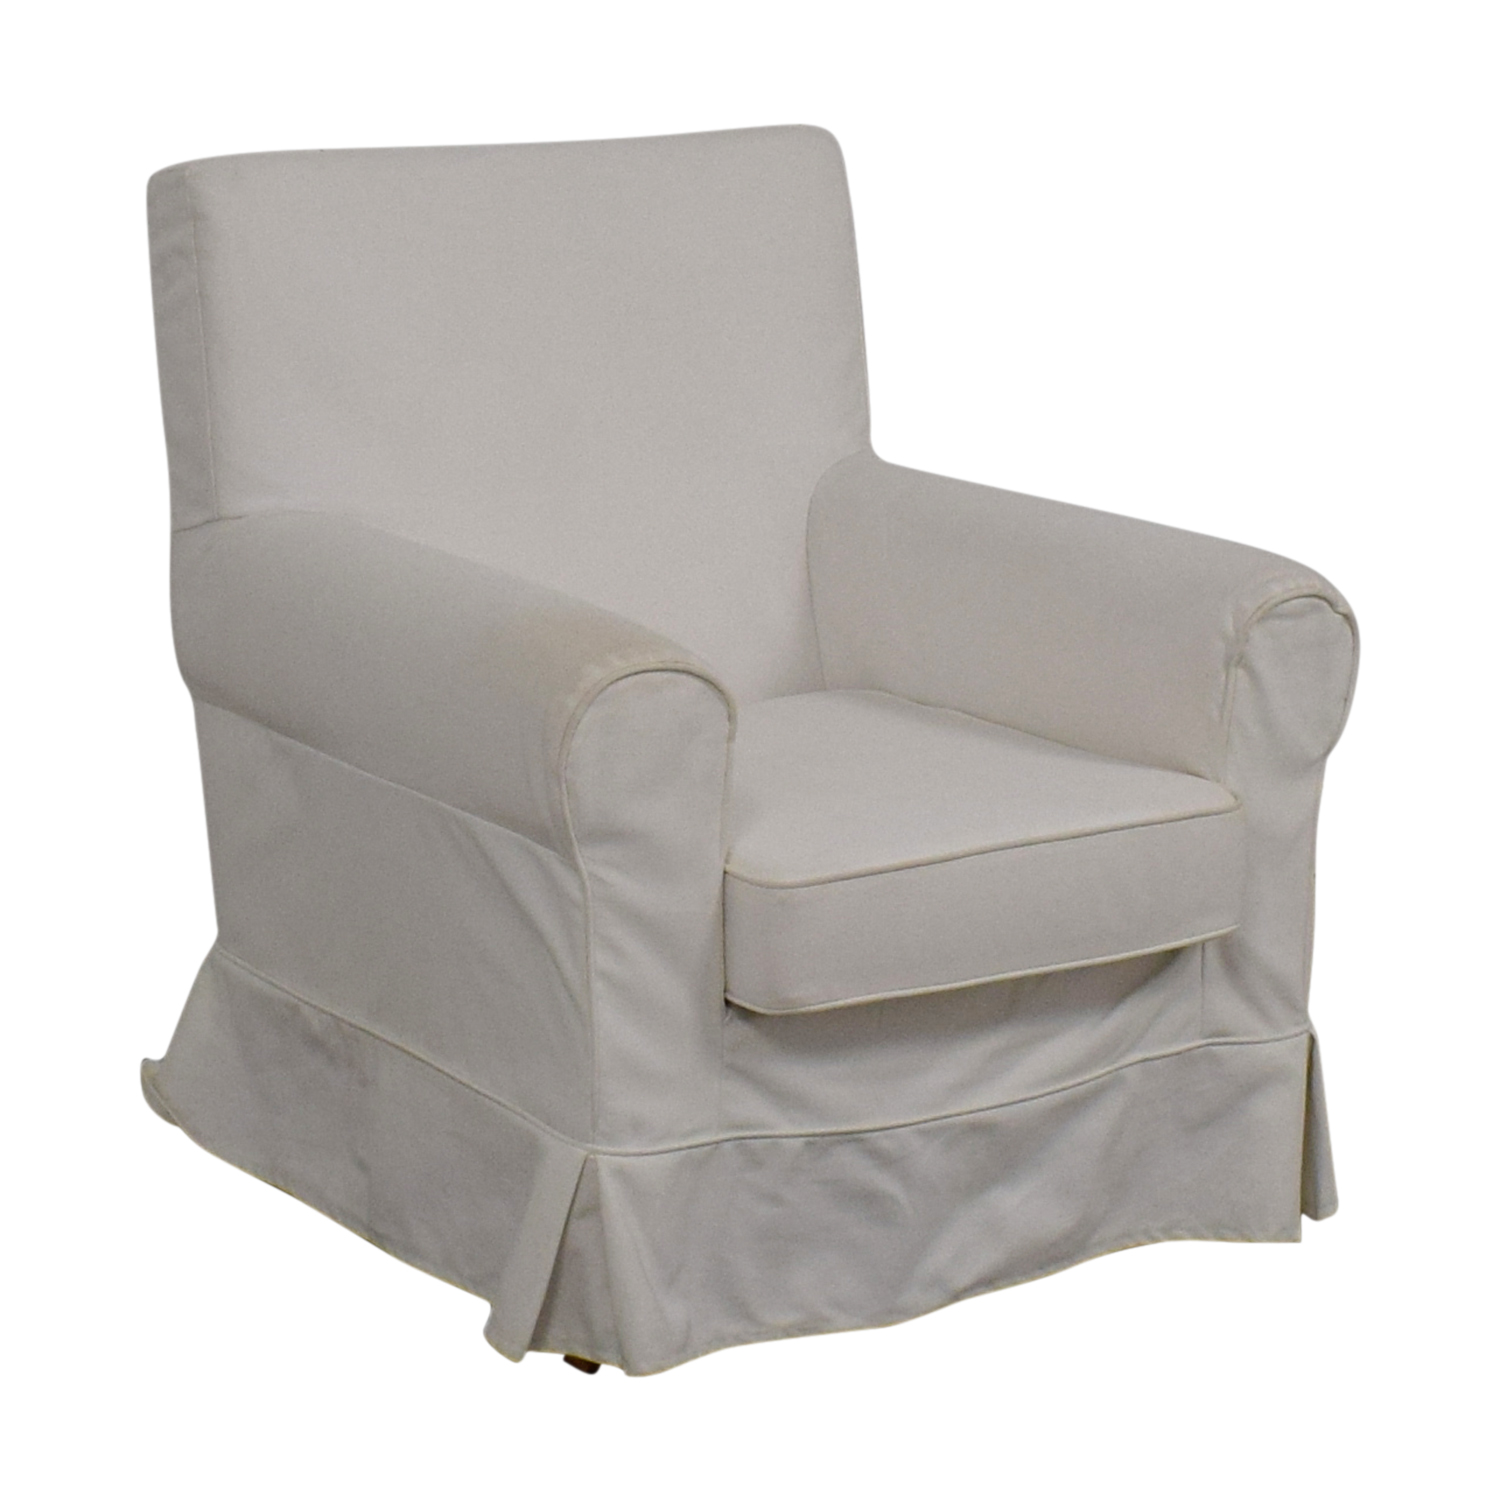 Accent Chairs Prices 90 Off Ikea Ikea Eltorp Jennylund White Skirted Accent